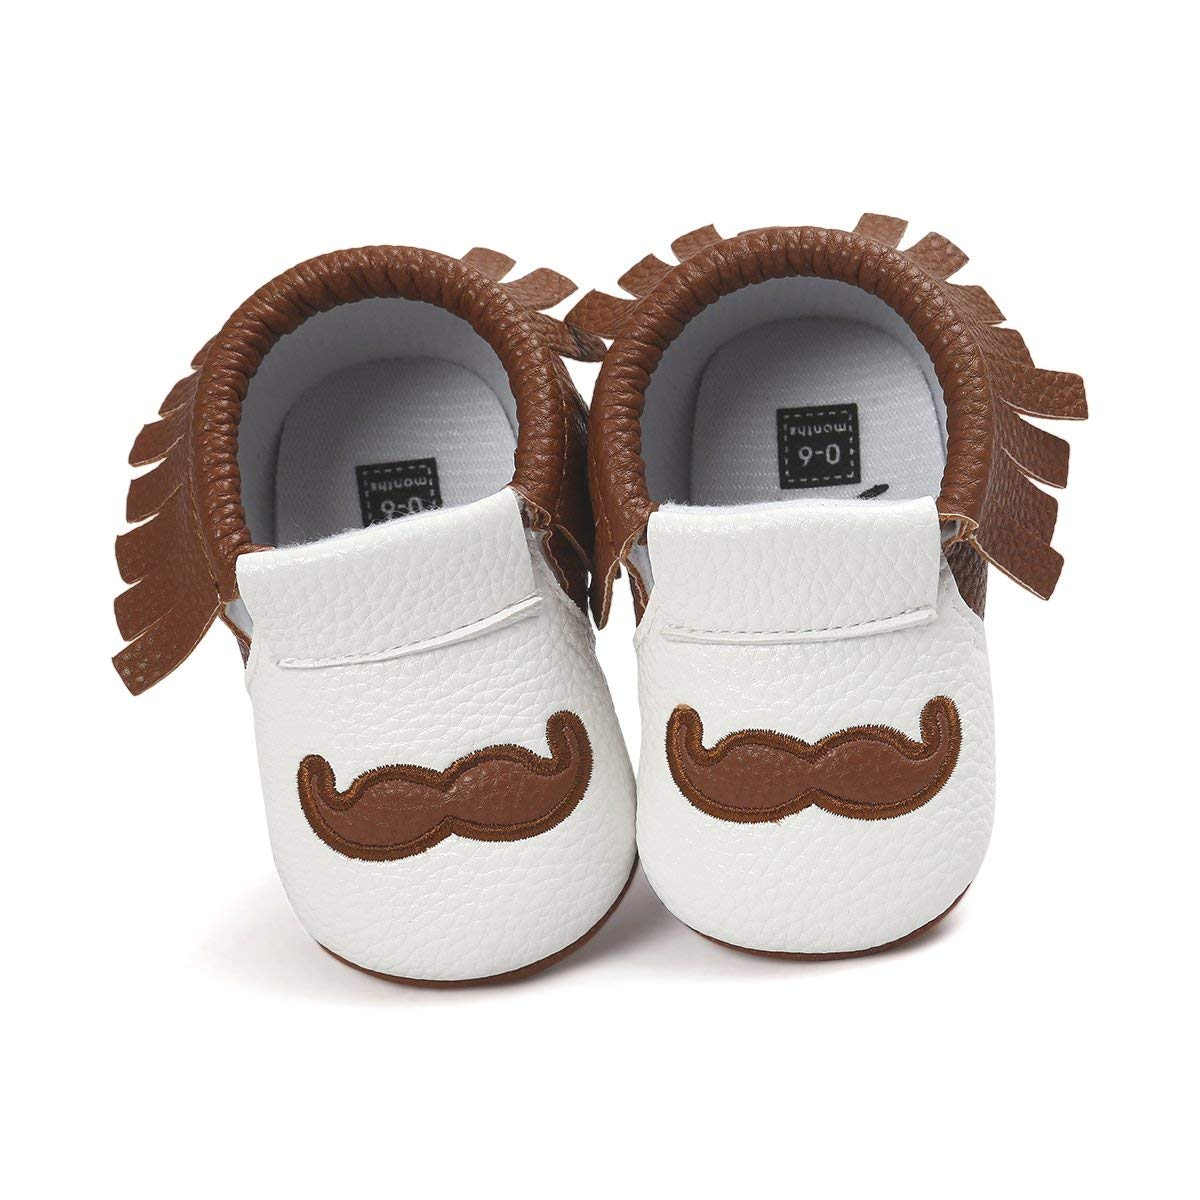 a79310176c47 Get Quotations · Hongfei 6-12 Months(Brown) Baby Moccasins